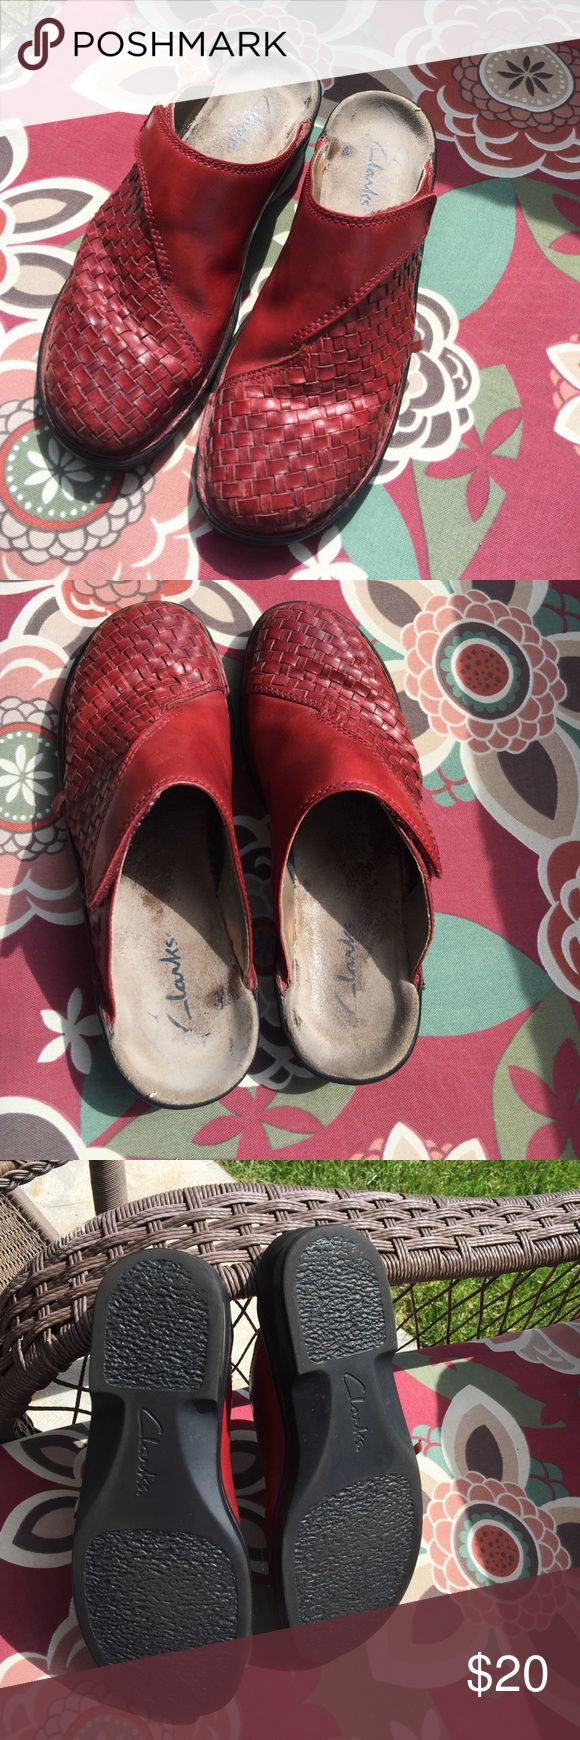 Women's leather clogs/mules by Clarks Reddish upper. Some wear on the side as seen in pictures. Price reflects this issue Clarks Shoes Mules & Clogs